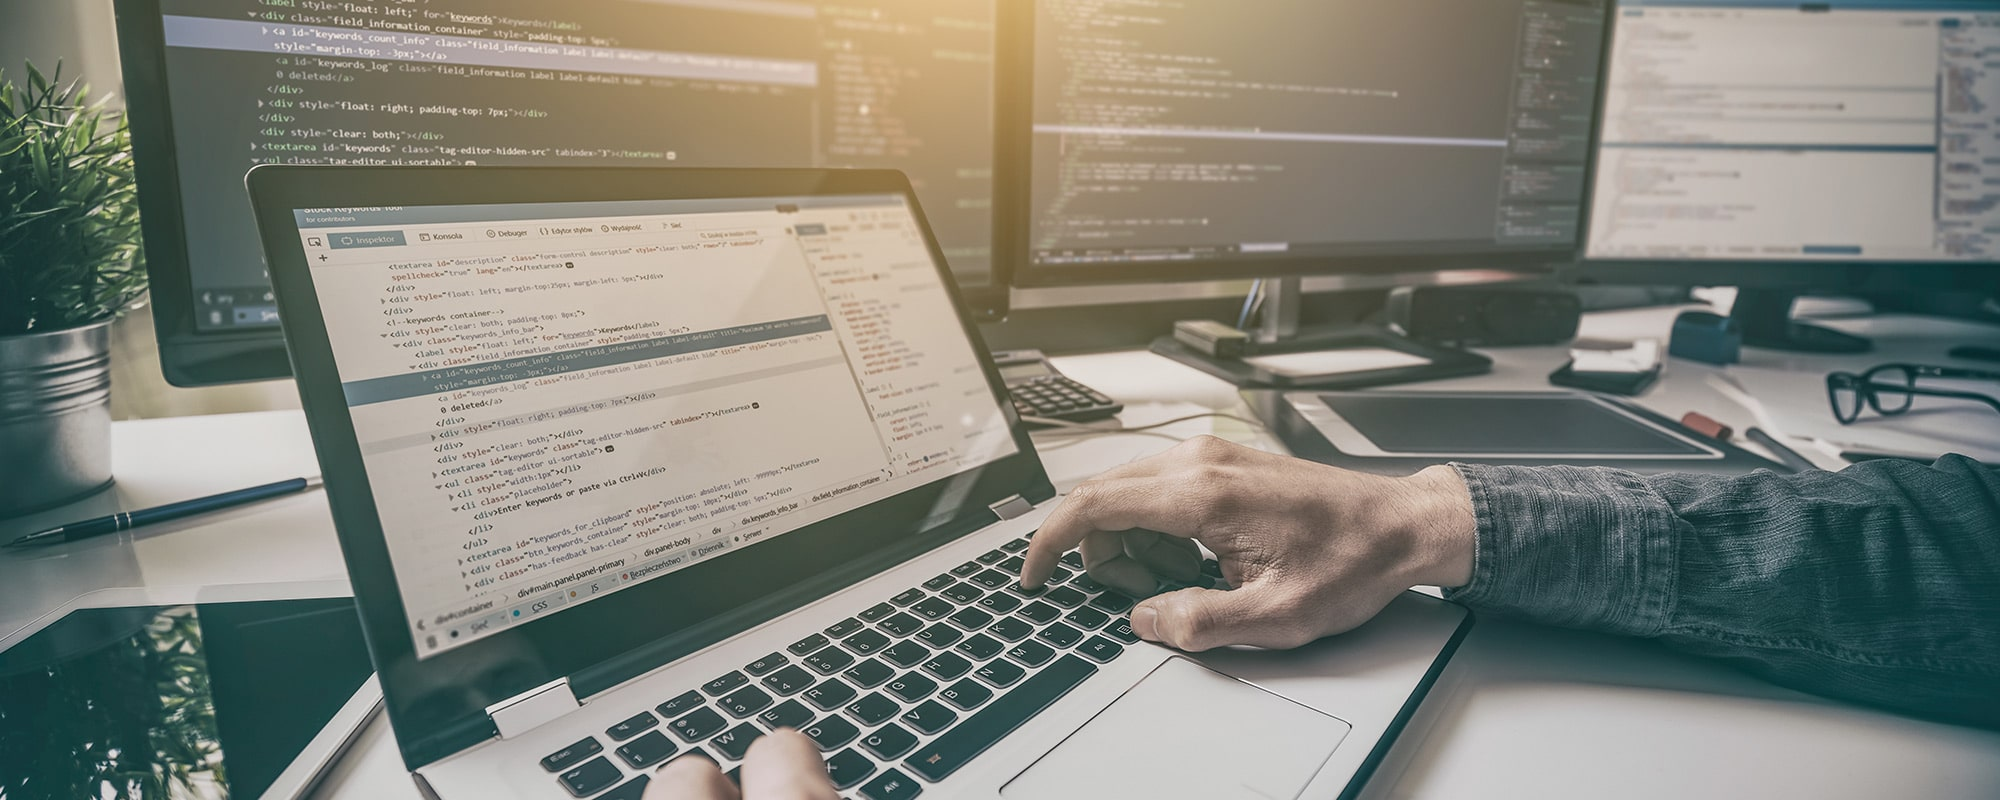 MongoDB: The Powerhouse Behind Personalized, Reliable and Fast Web Experiences